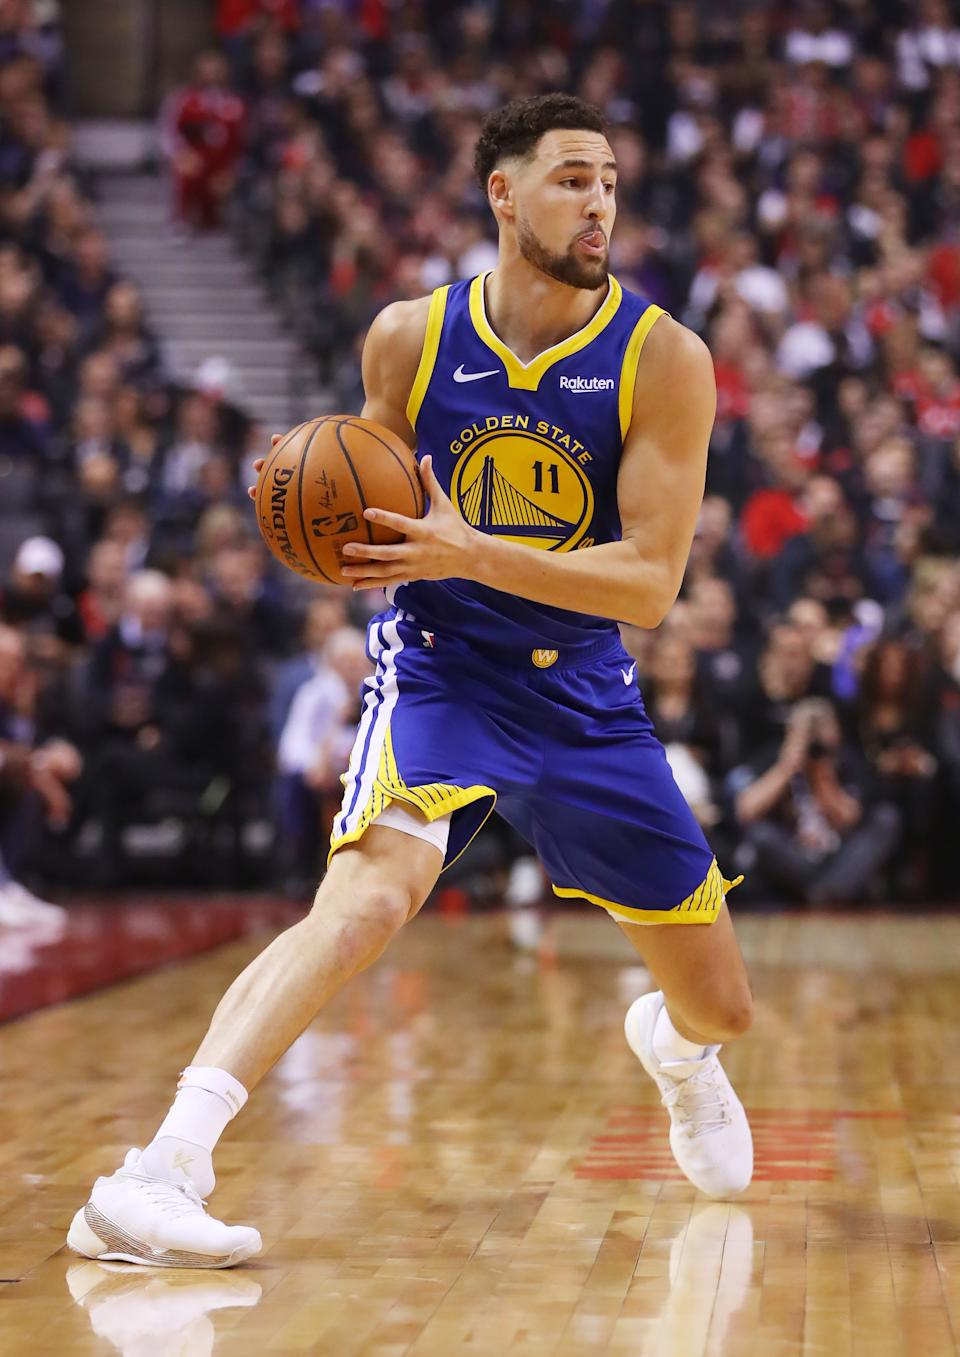 Klay Thompson #11 of the Golden State Warriors handles the ball on offense against the Toronto Raptors in the second quarter during Game One of the 2019 NBA Finals at Scotiabank Arena on May 30, 2019 in Toronto, Canada. (Photo by Gregory Shamus/Getty Images)